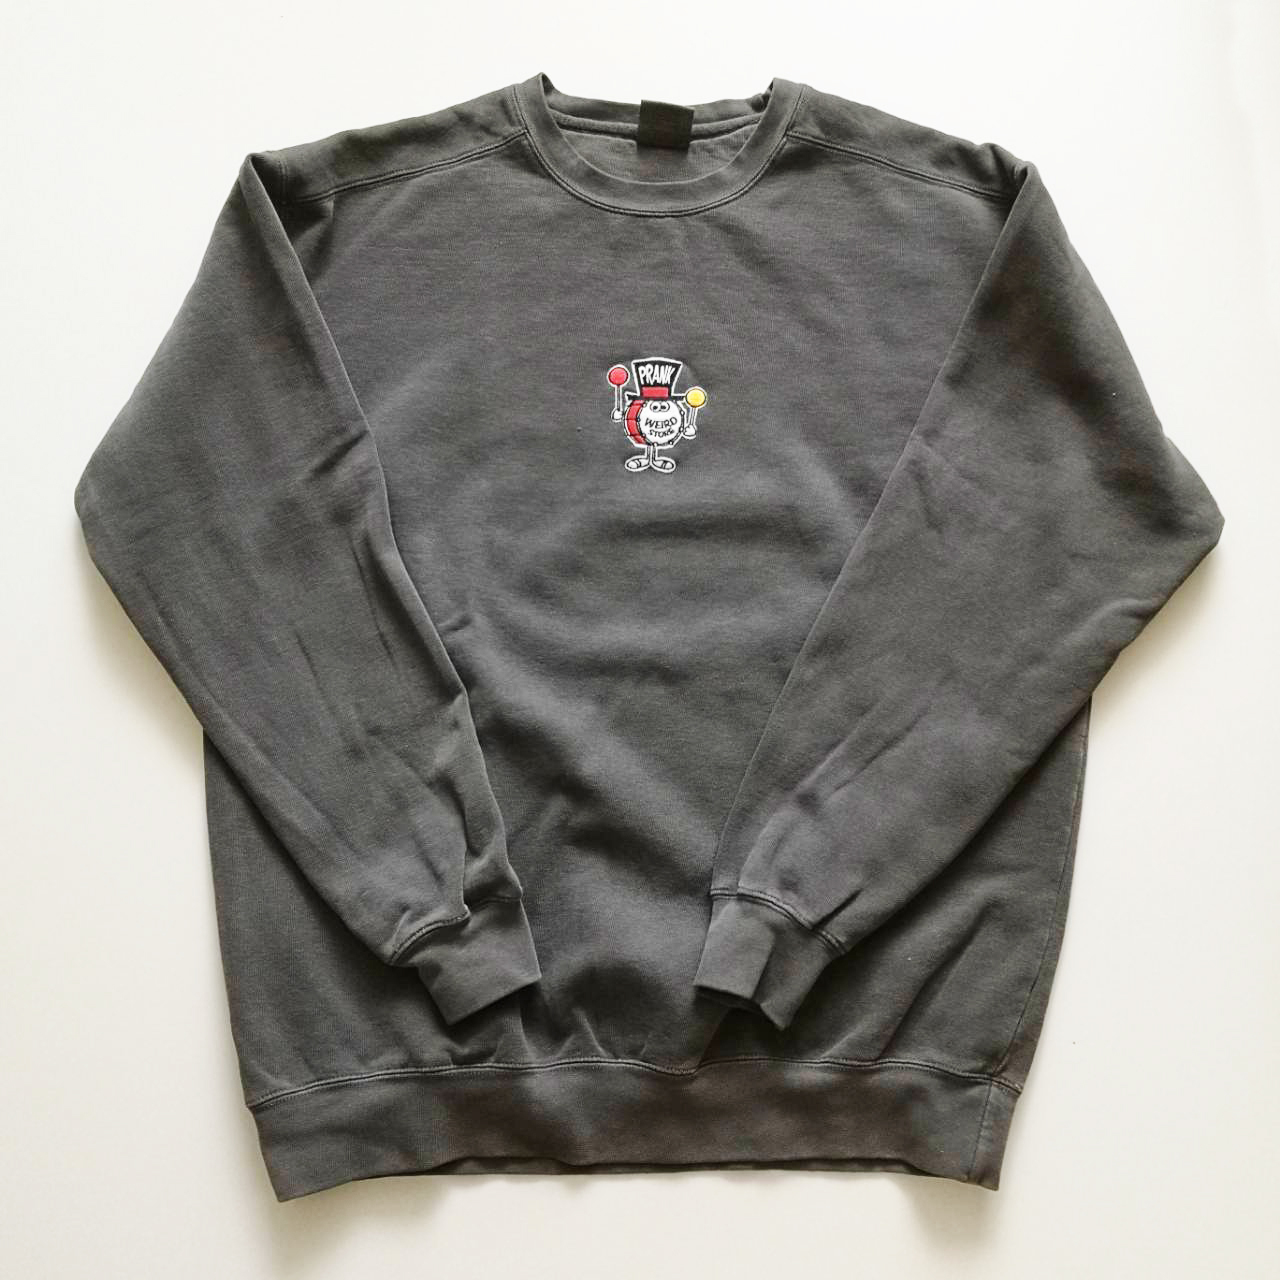 "PRANK ""DUM DUM"" CREW NECK SWEAT"